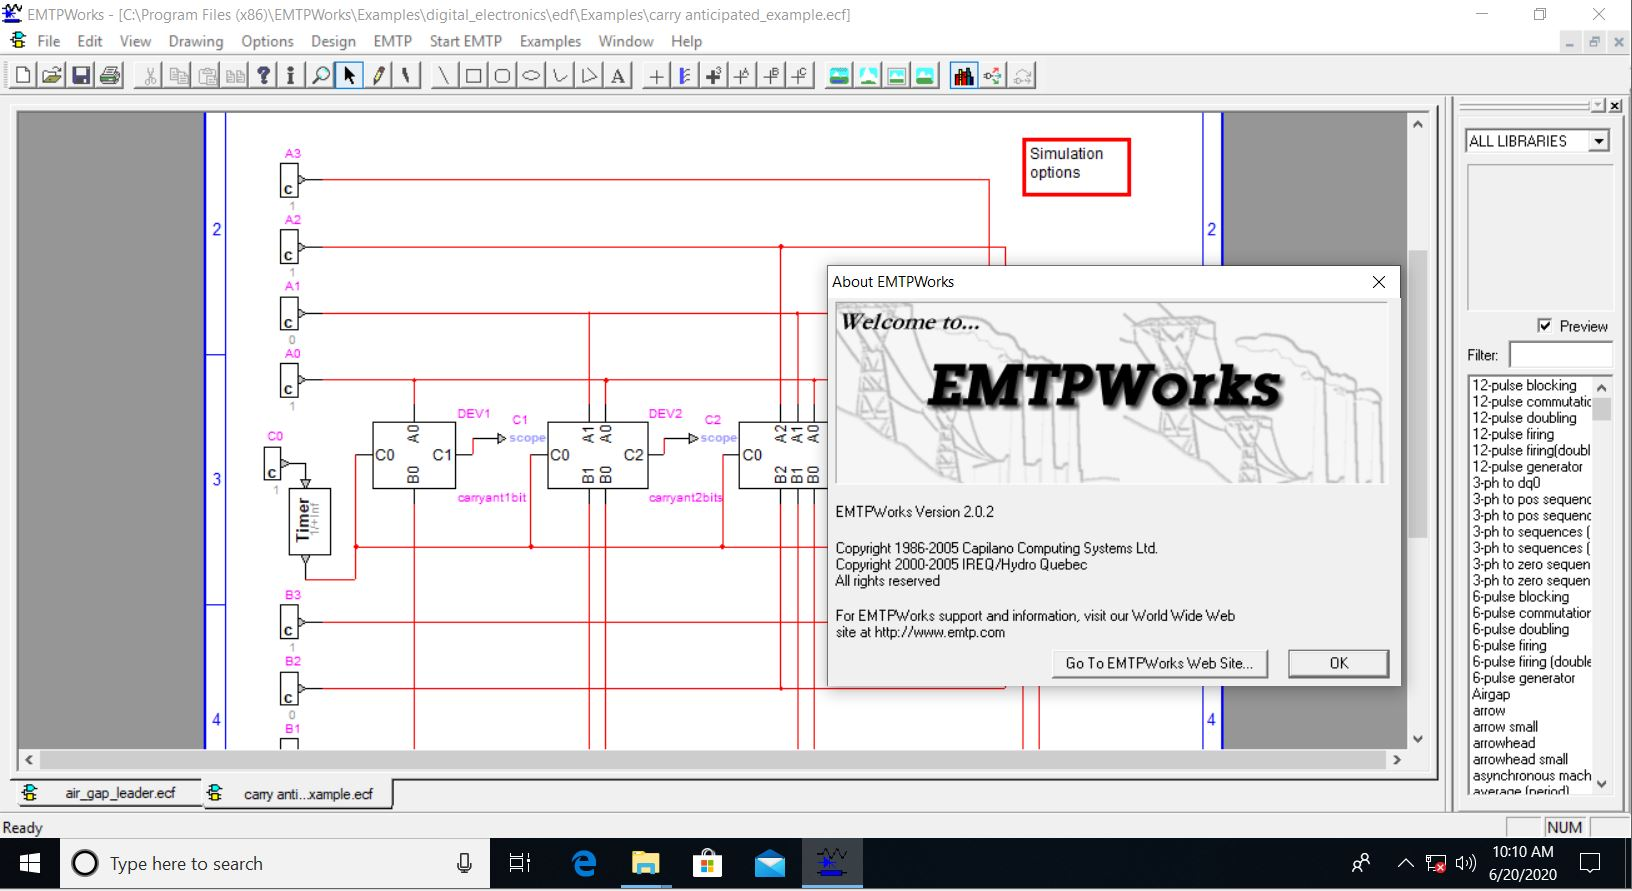 Working with EMTPWorks 2.0.2 full license